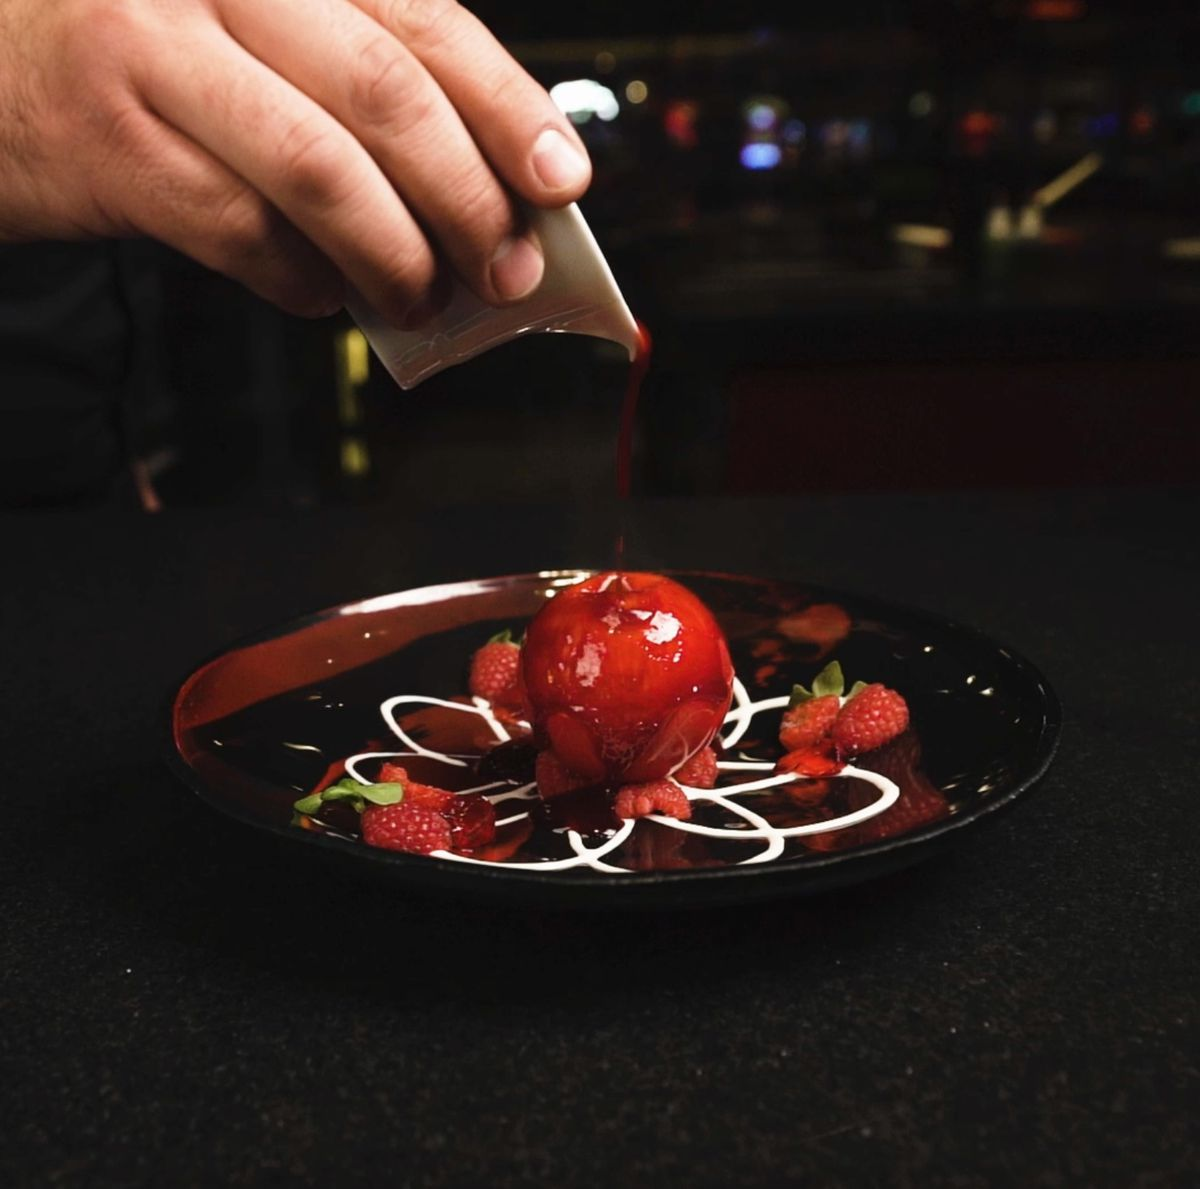 A white chocolate sphere with fresh raspberry